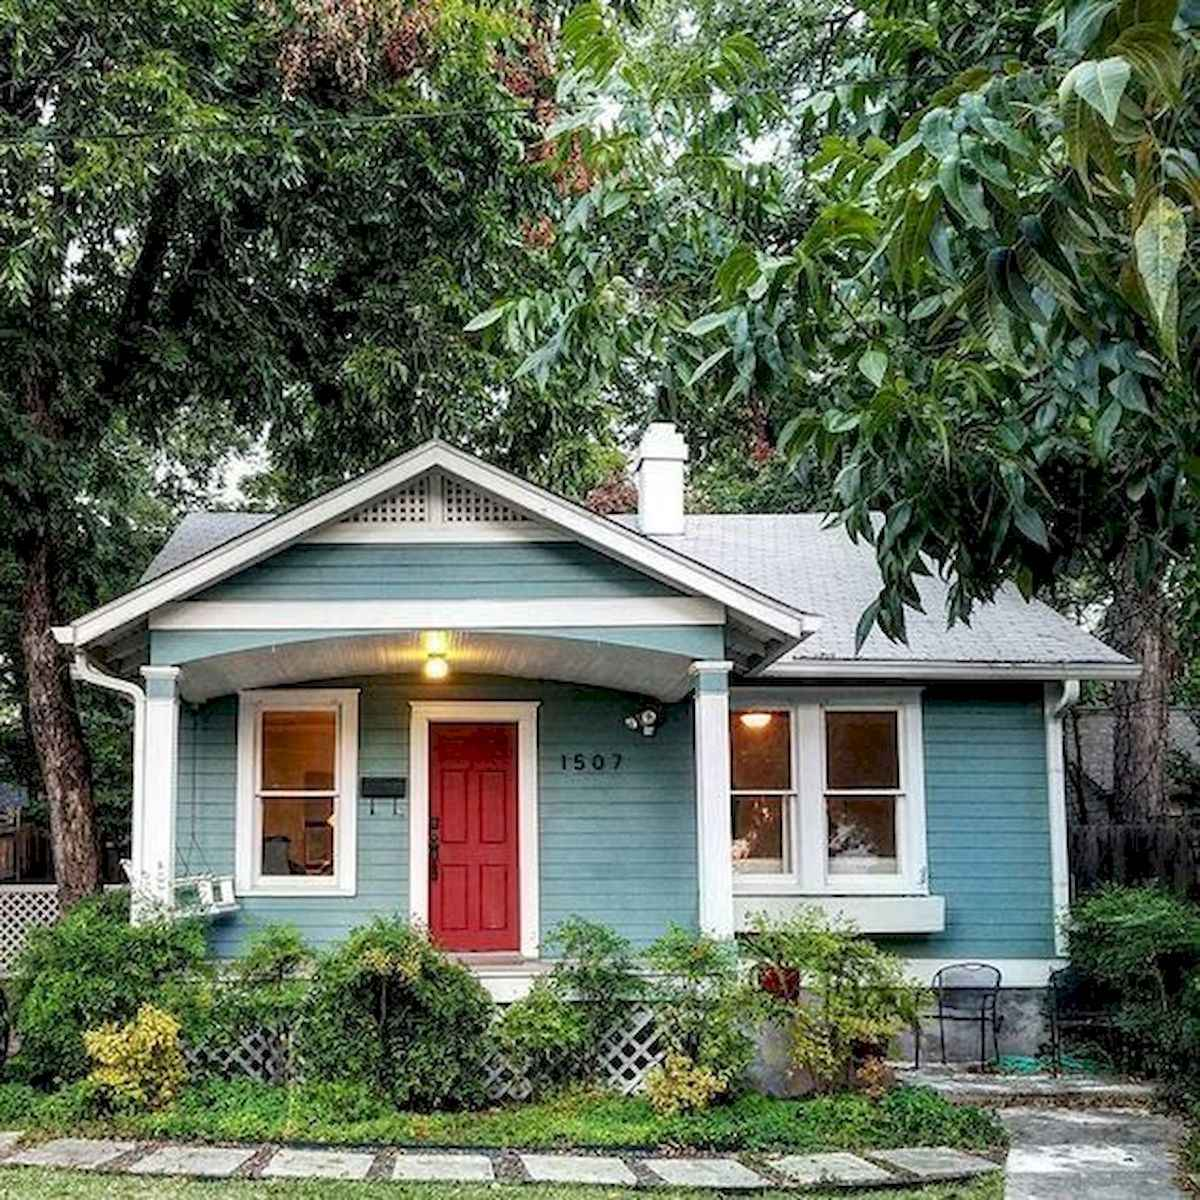 60 Beautiful Tiny House Plans Small Cottages Design Ideas (7)